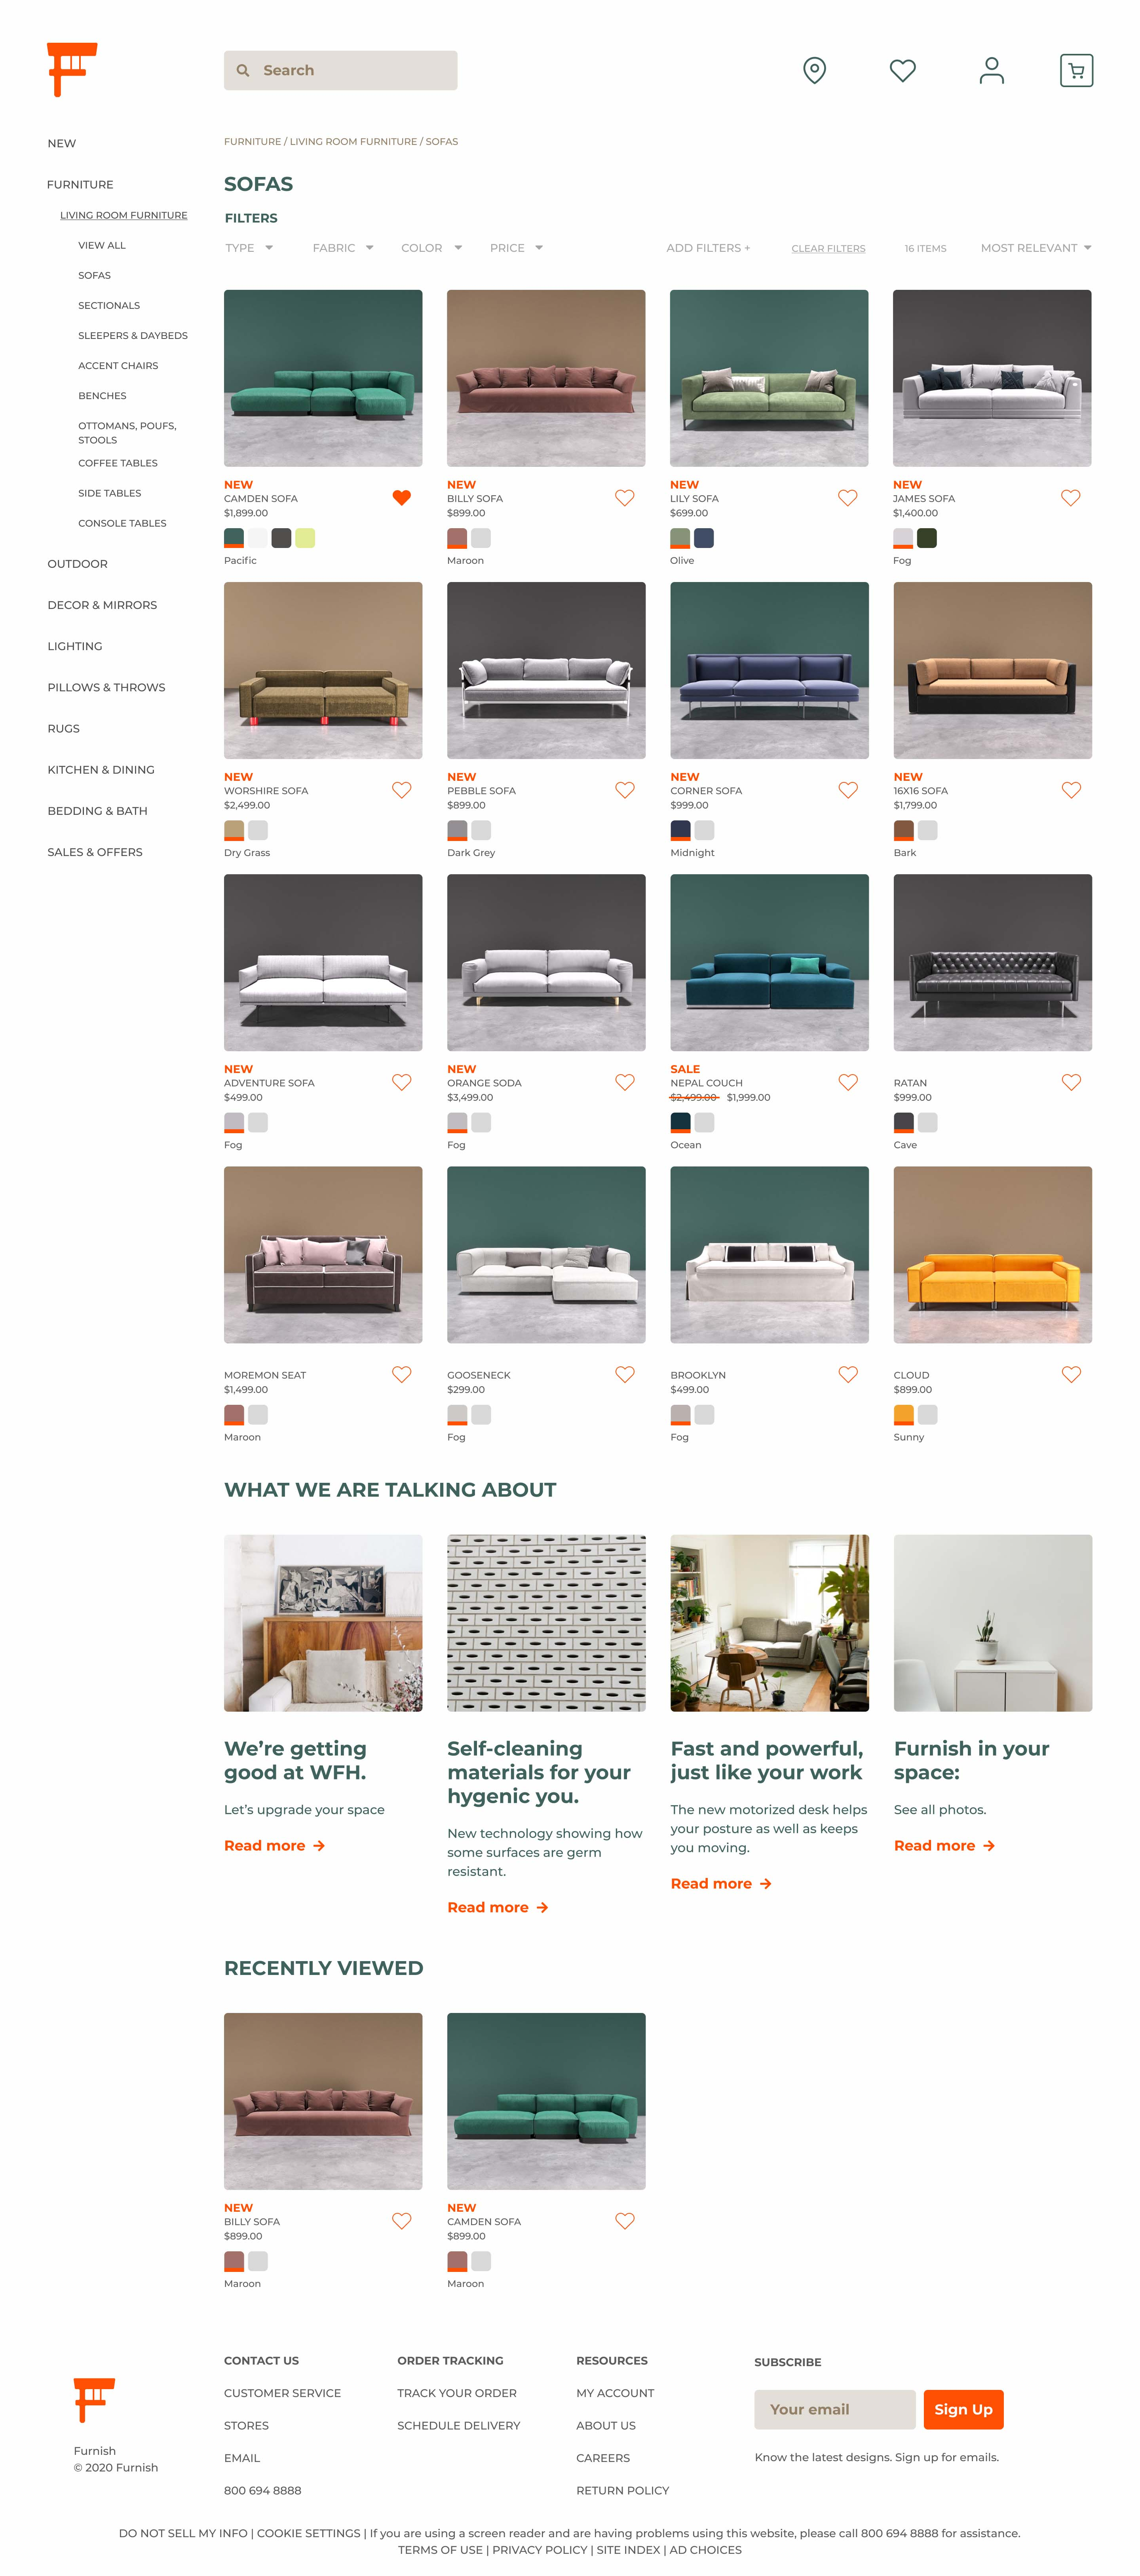 A High fidelity rendering of the Furnish Web App product catalogue page of sofas